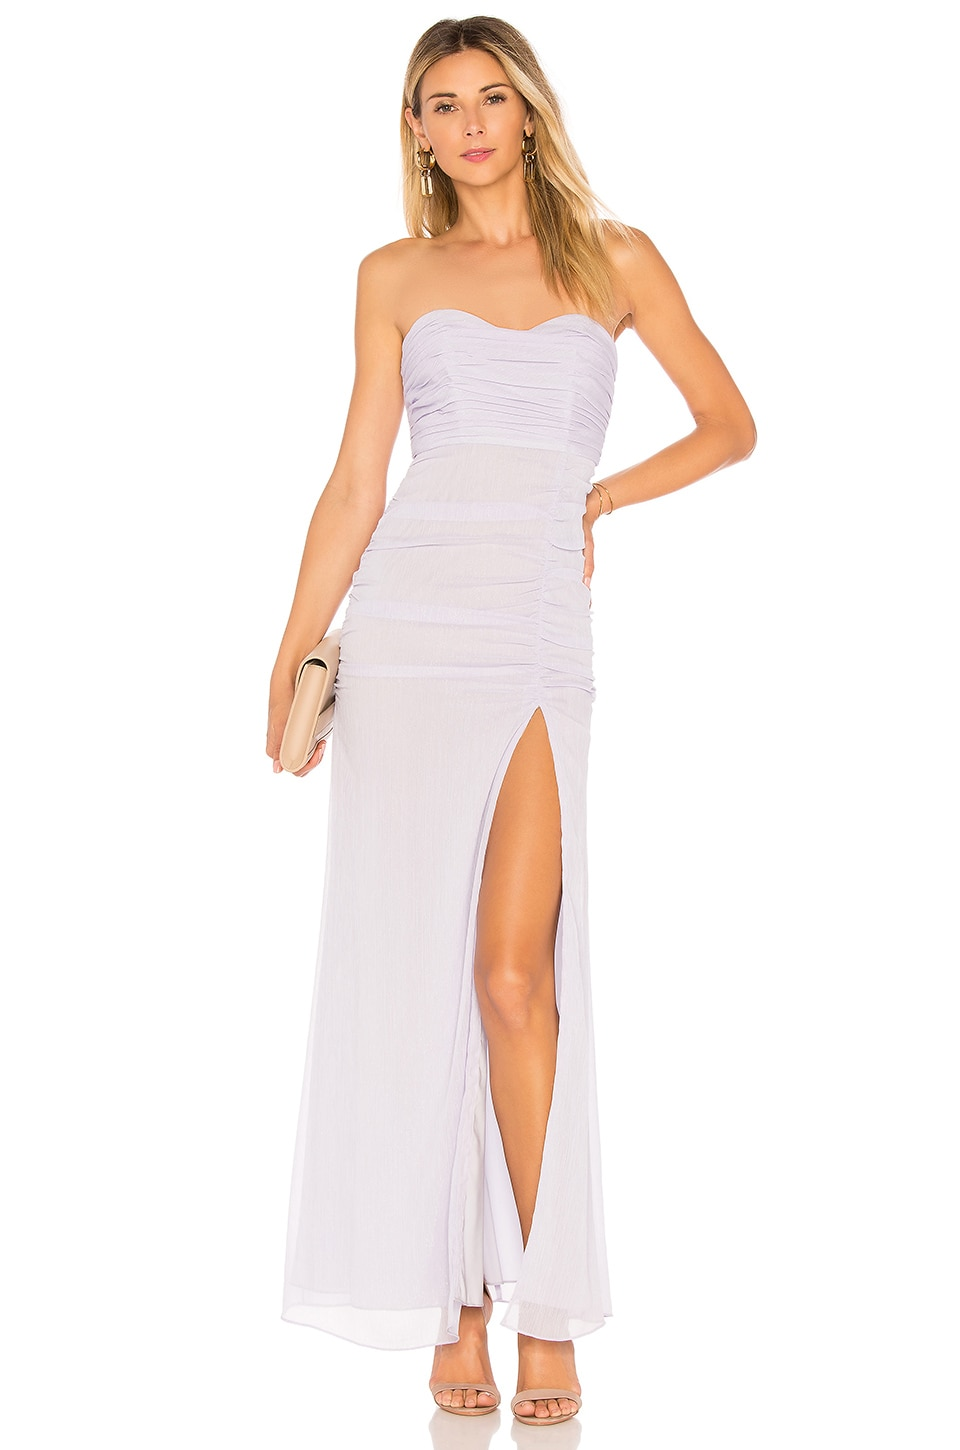 MAJORELLE Iridessa Dress in Powder